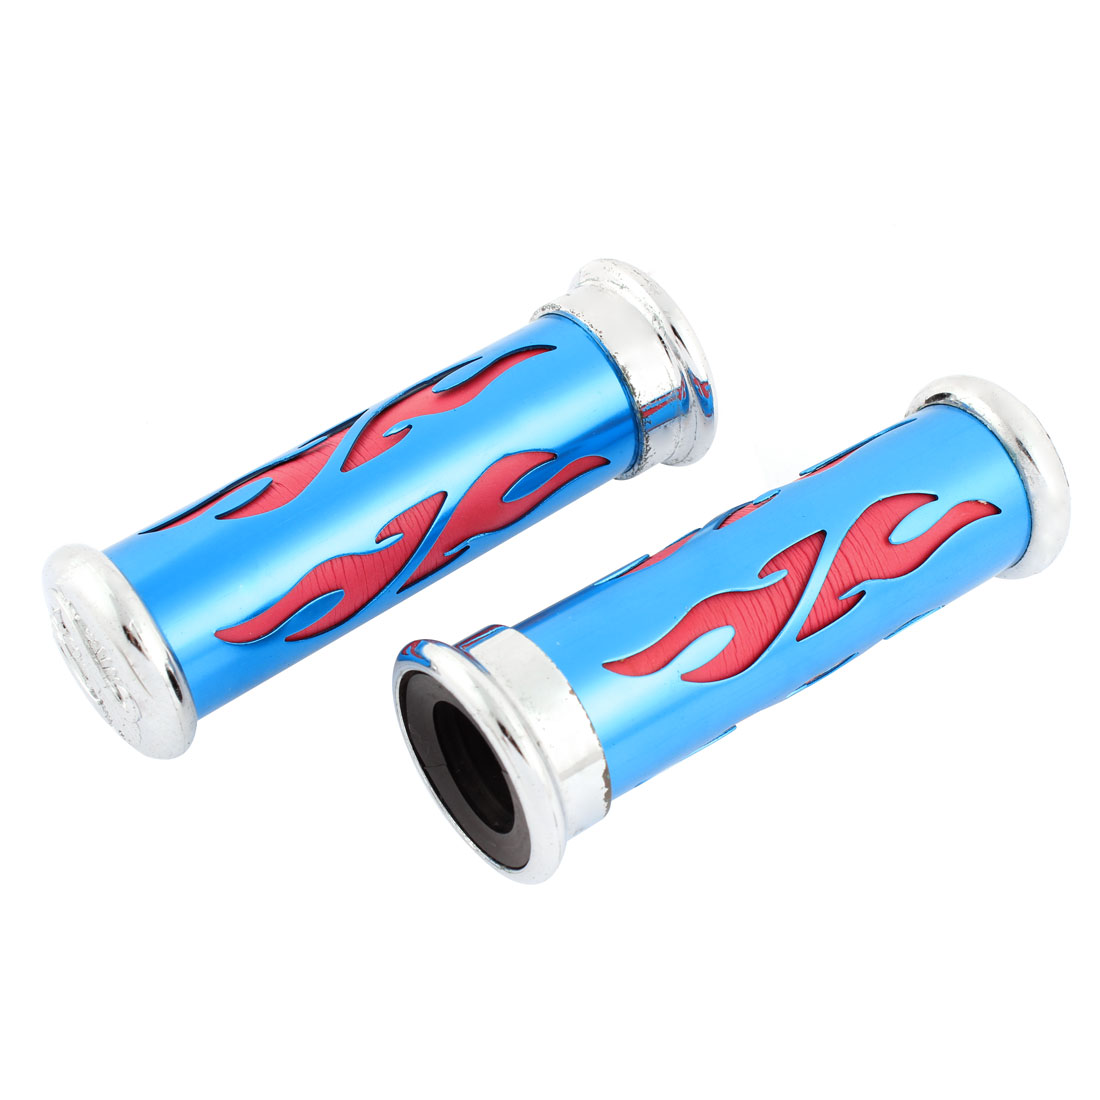 2 Pcs Motorcycle Red Fire Pattern Race Handlebar 25mm Grip Cover Blue